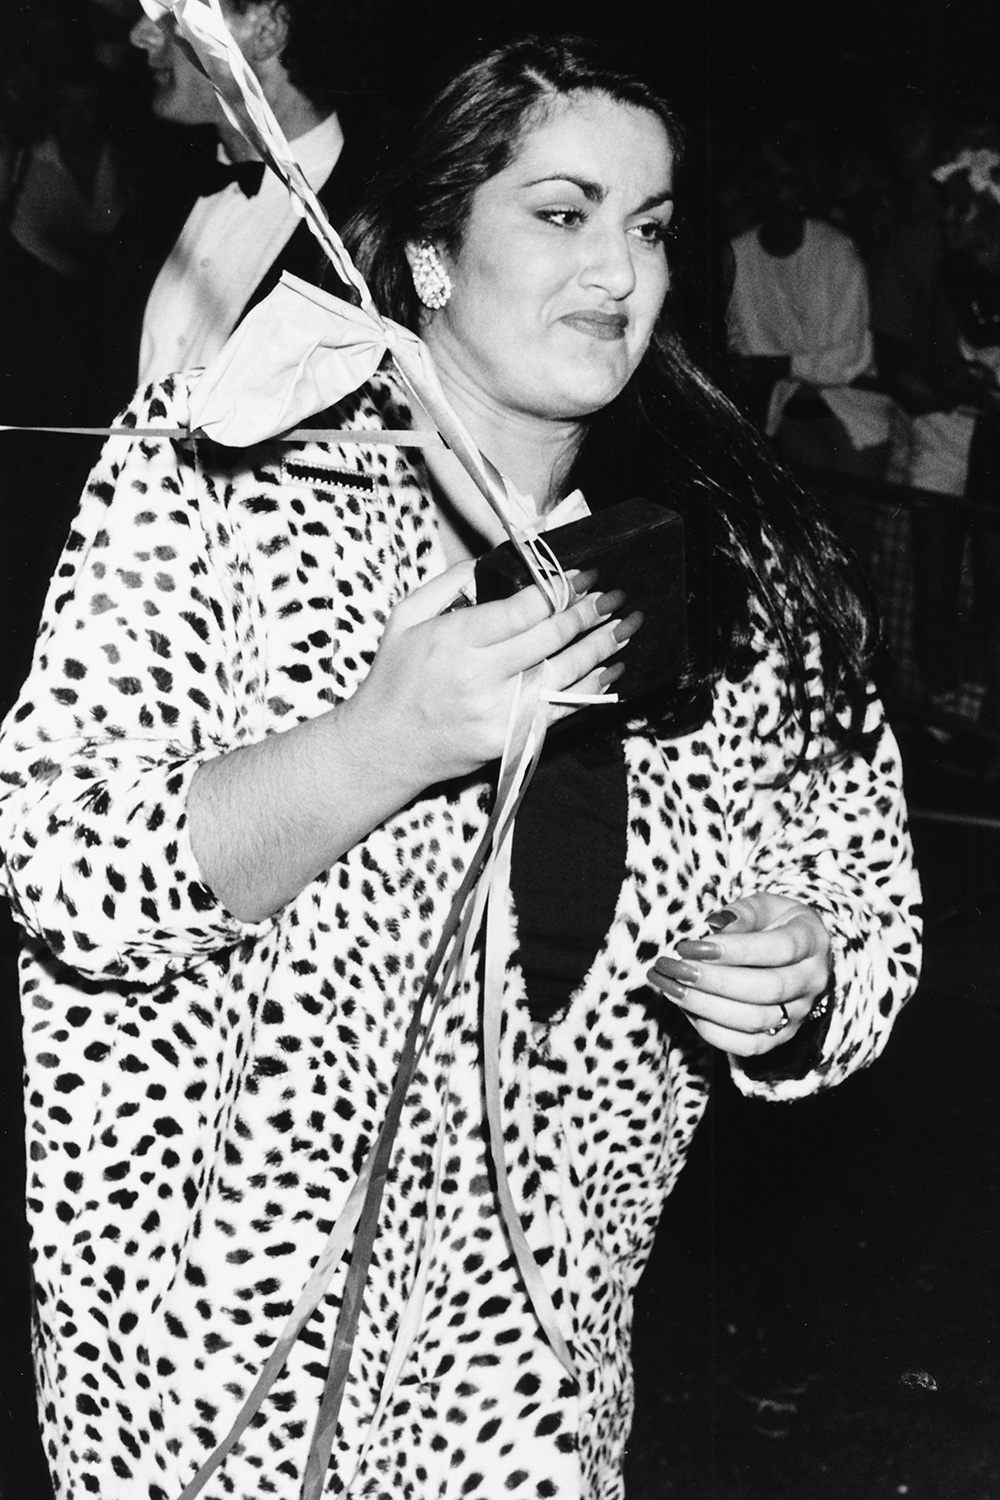 Melanie Panayiotou, sister of singer George Michael, holding balloons as she attends the 'Wham!' farewell party, London, July 8th 1986